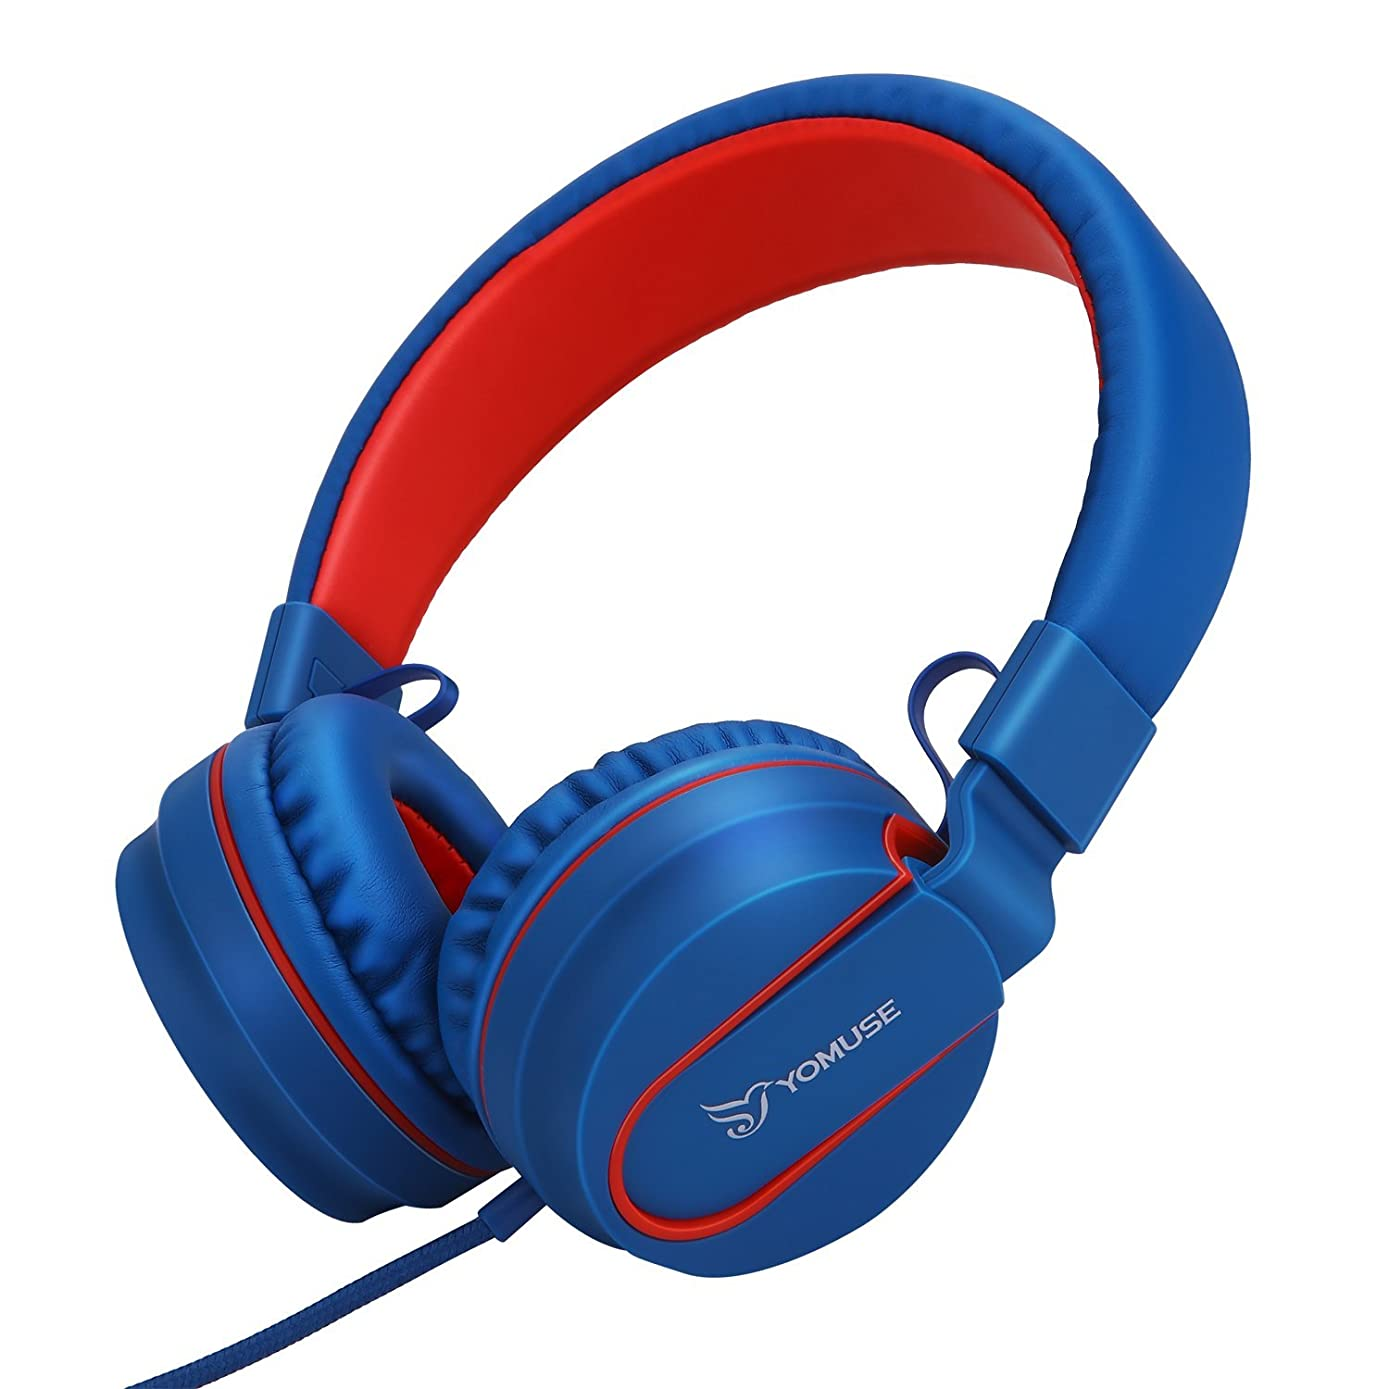 Yomuse F95 On Ear Headphones Foldable Adjustable Headband with Microphone, 3.5mm Plug Jack for Kids Childrens Teens Adults Blue Red